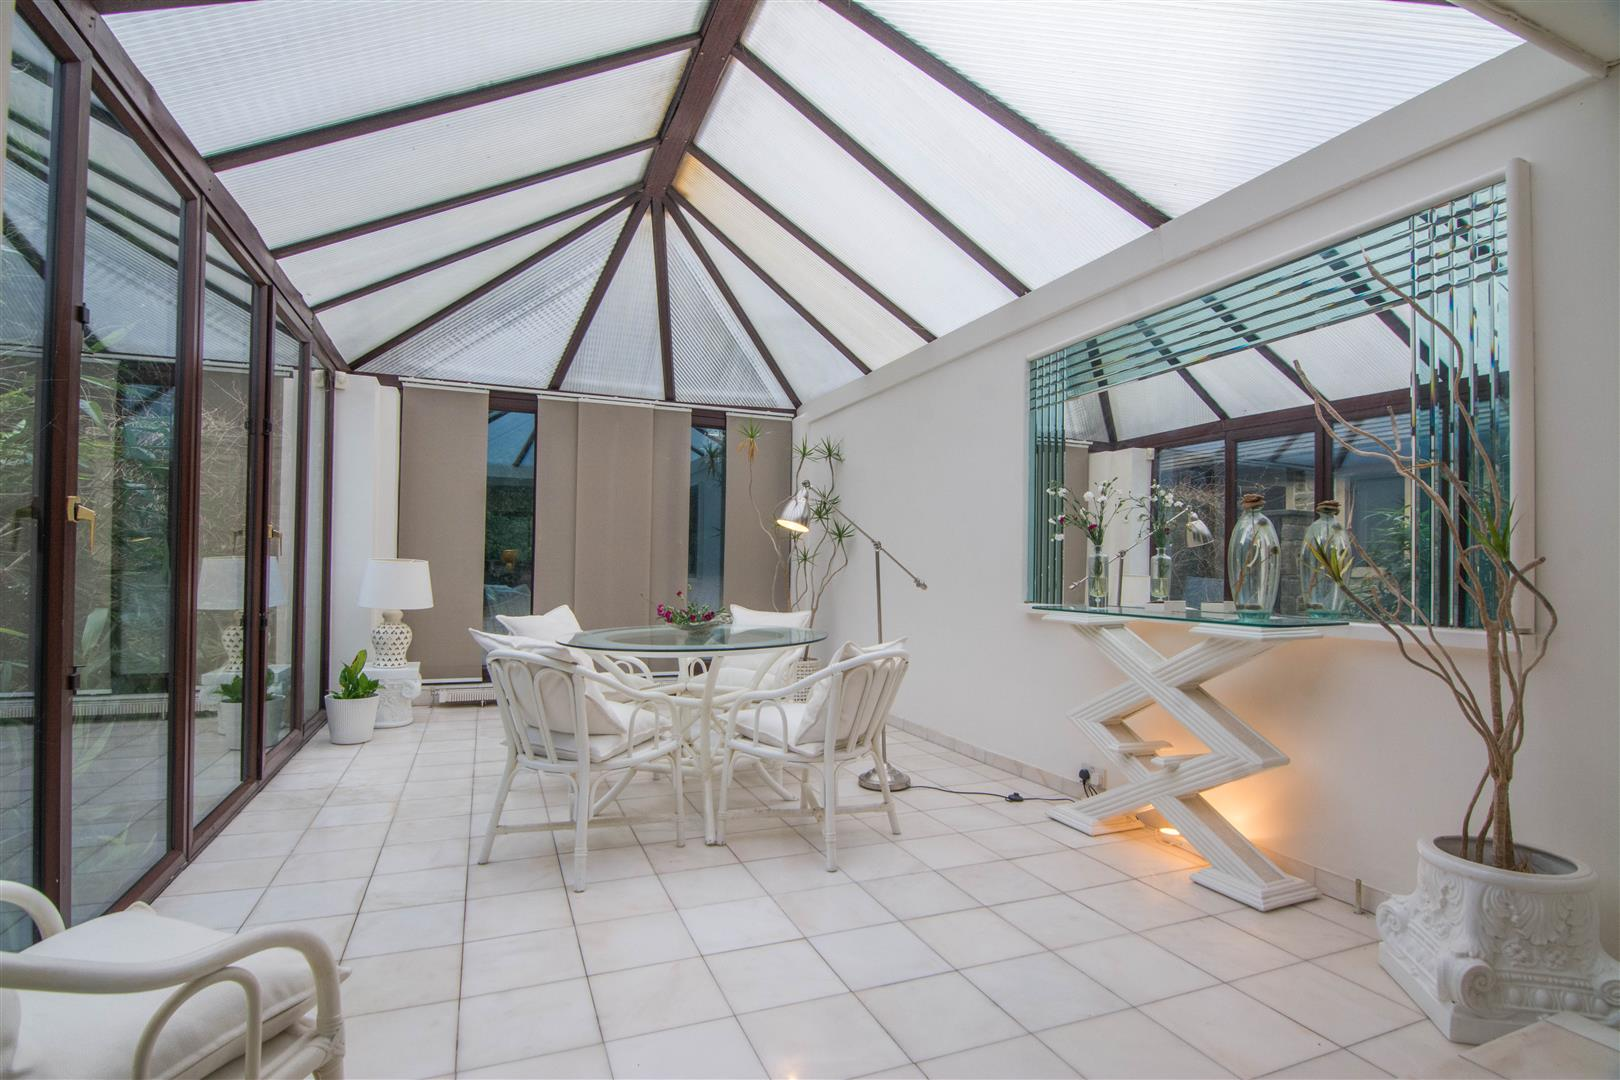 LARGE CONSERVATORY/SUN ROOM